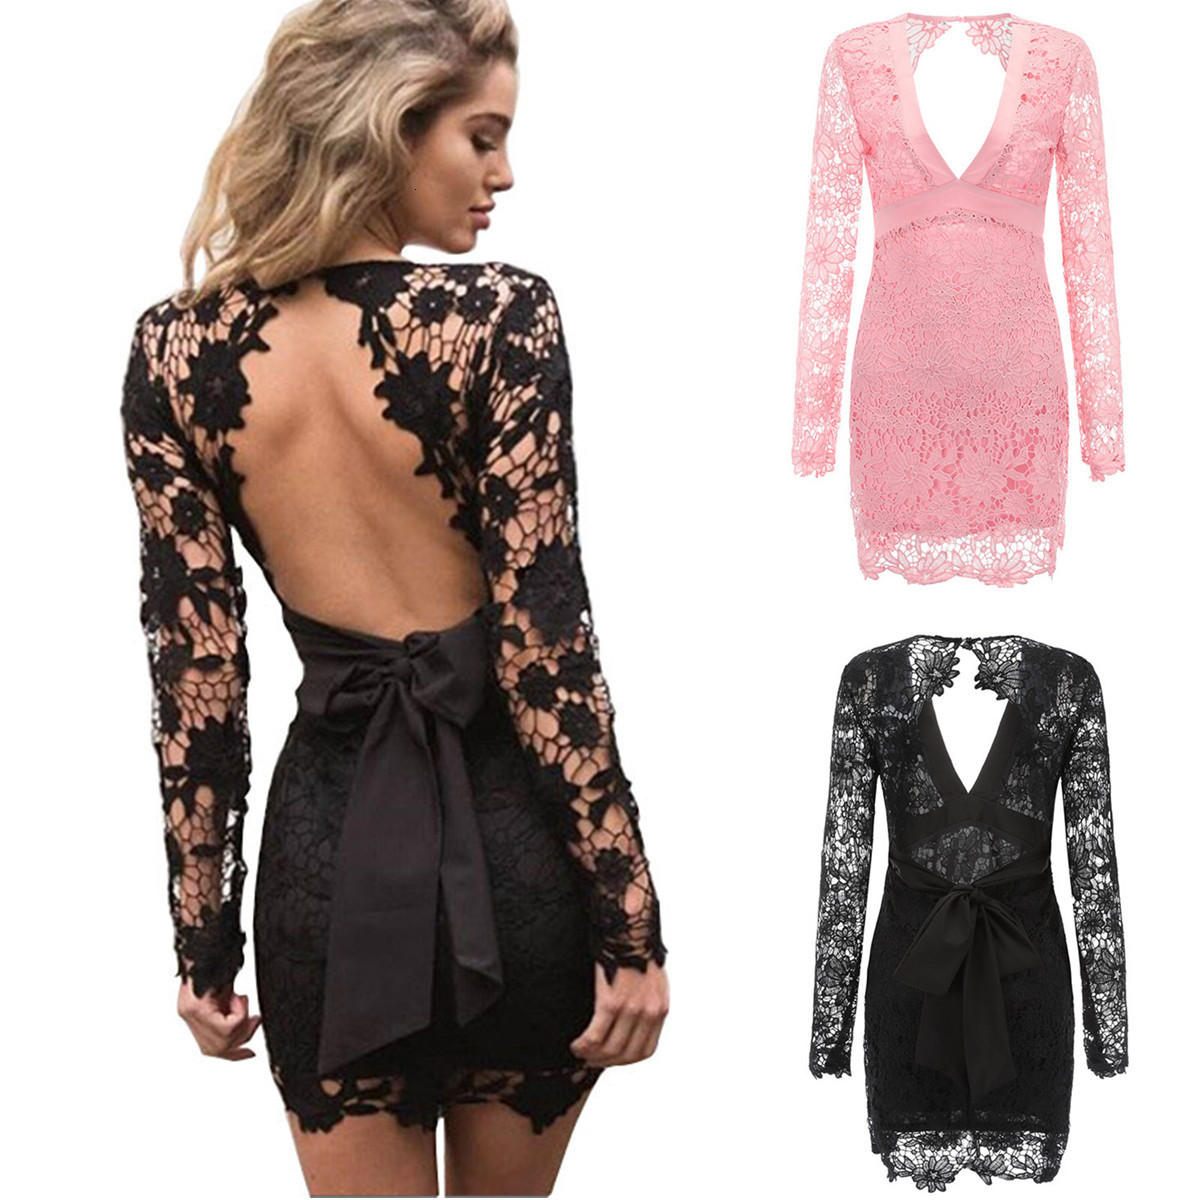 BacklakeGirls Sexy Short Cocktail Dresses Deep V Neck Shealth Long Lace Sleeve Min Party Gowns Abiye Gece Elbisesi 2019